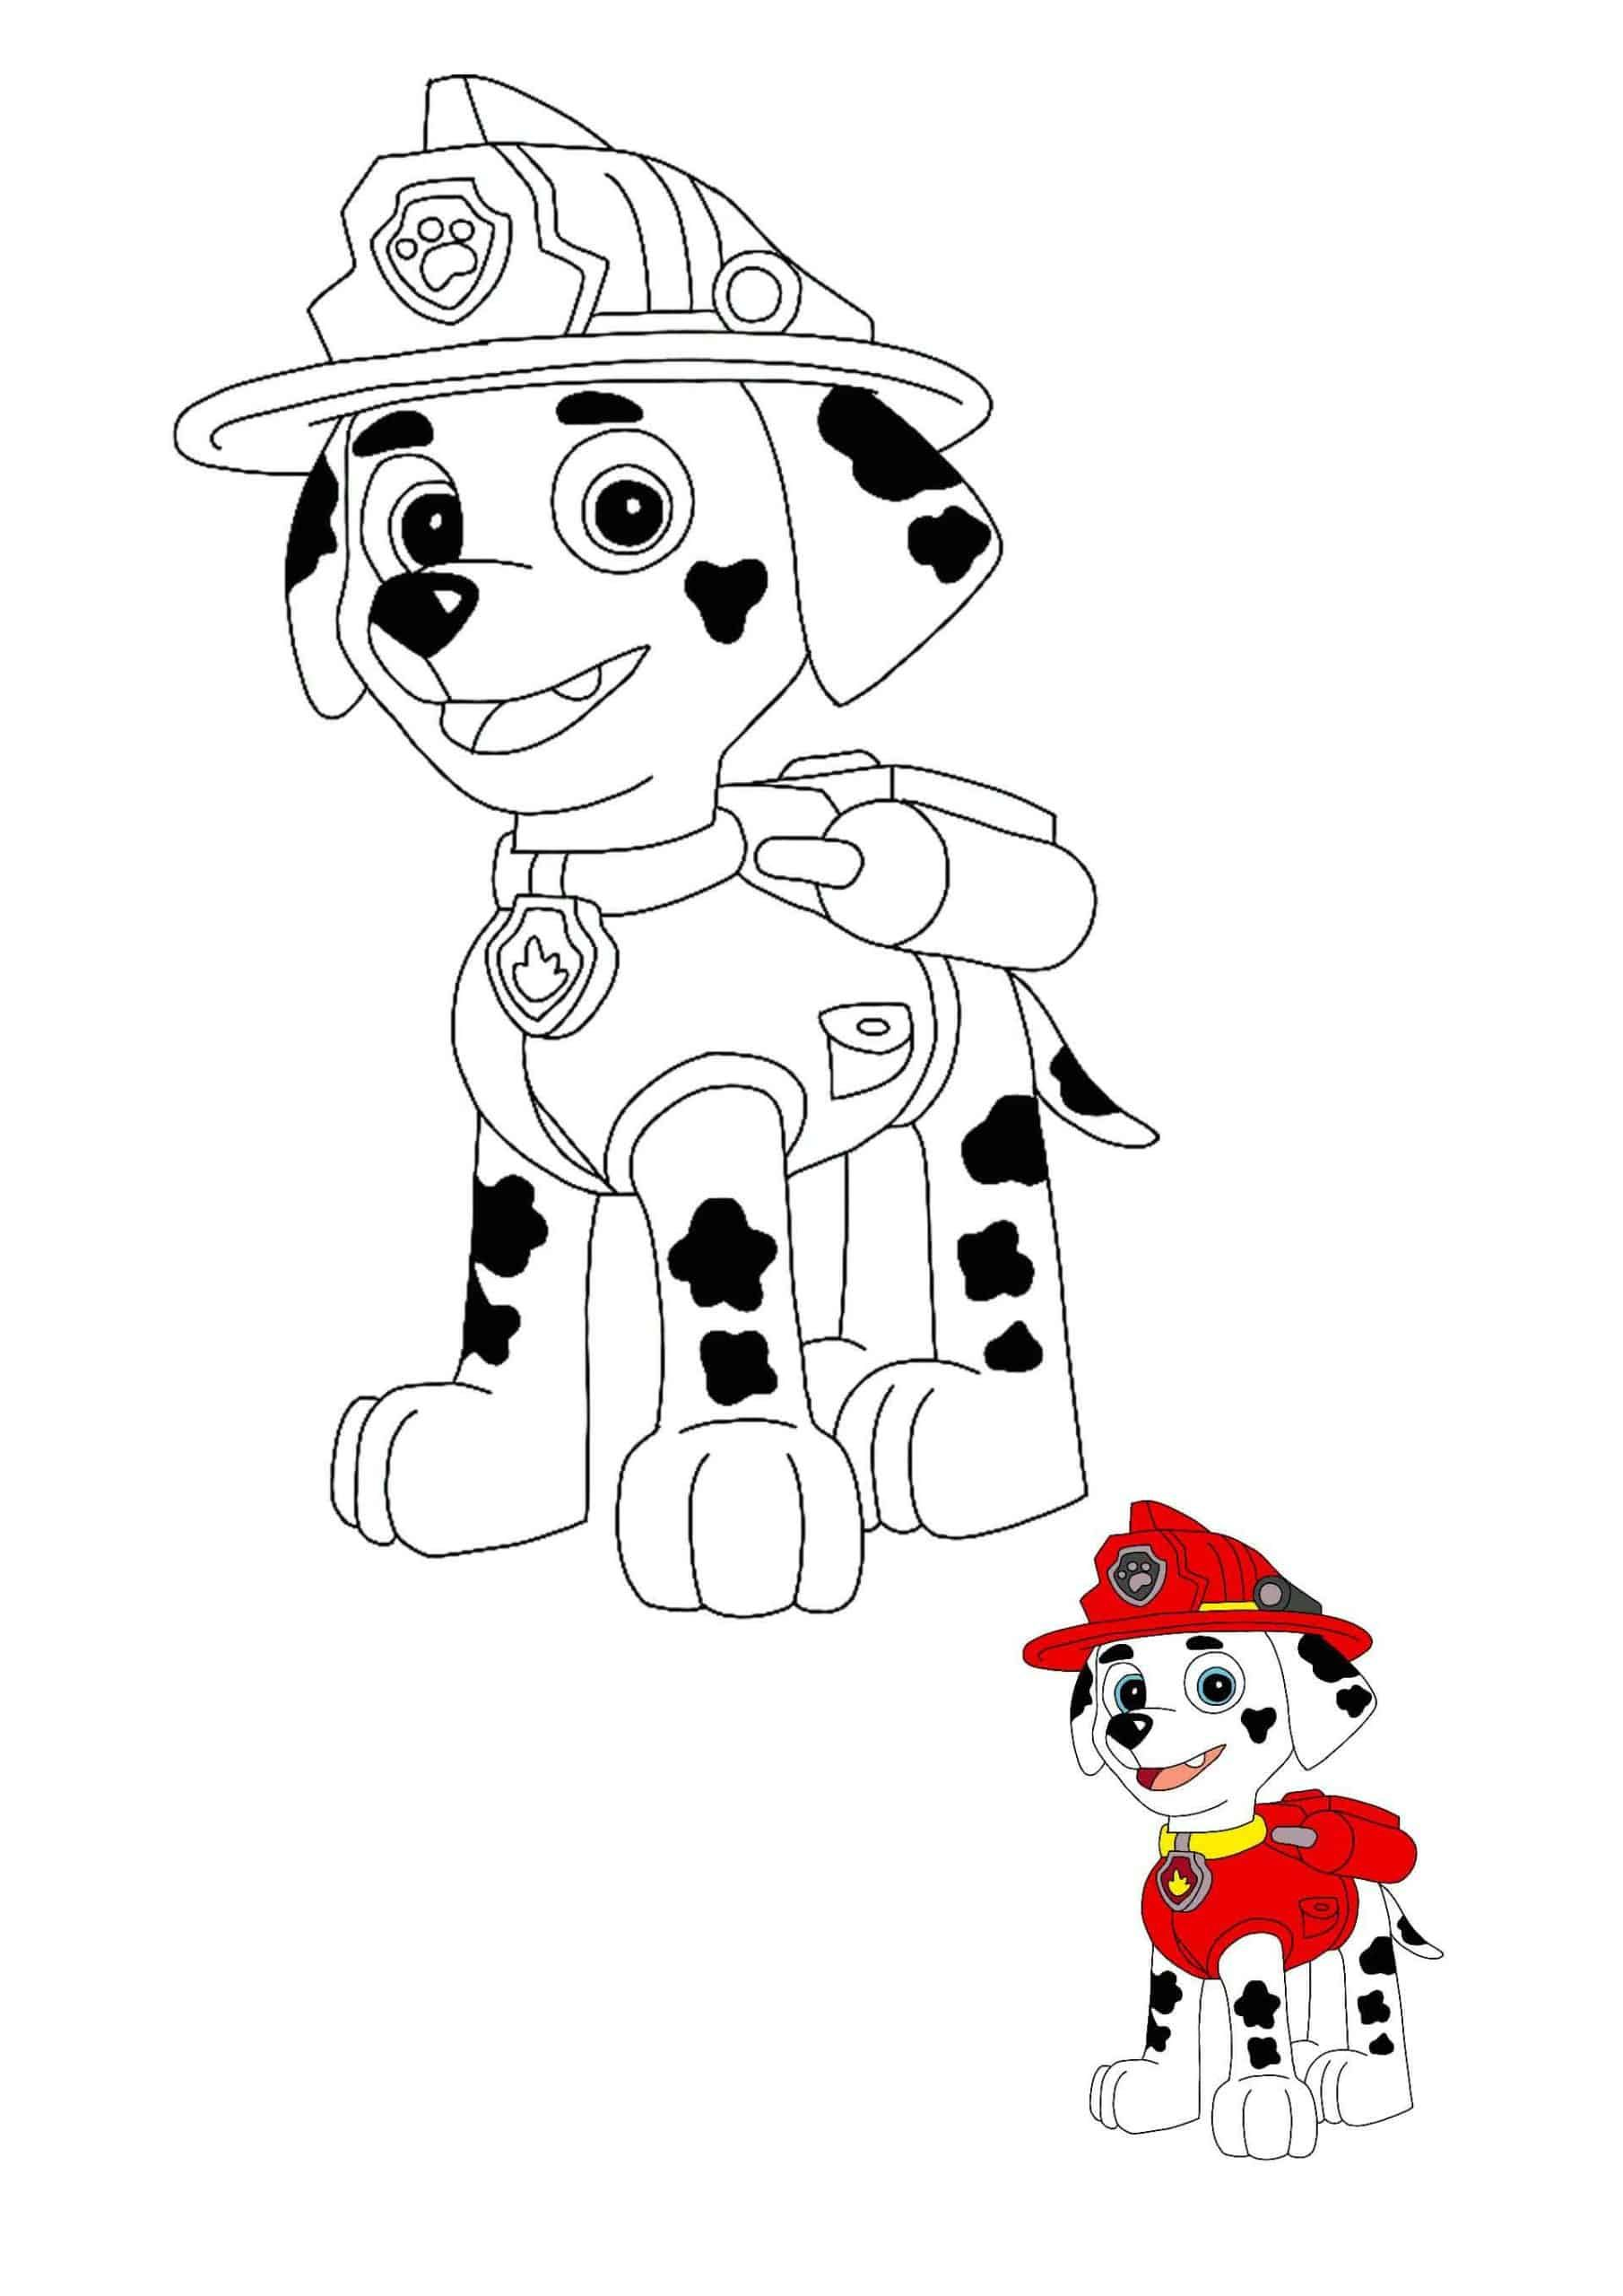 Paw Patrol Coloring Pages 68 Free Printable Coloring Sheets For Kids Paw Patrol Coloring Paw Patrol Coloring Pages Free Printable Coloring Sheets